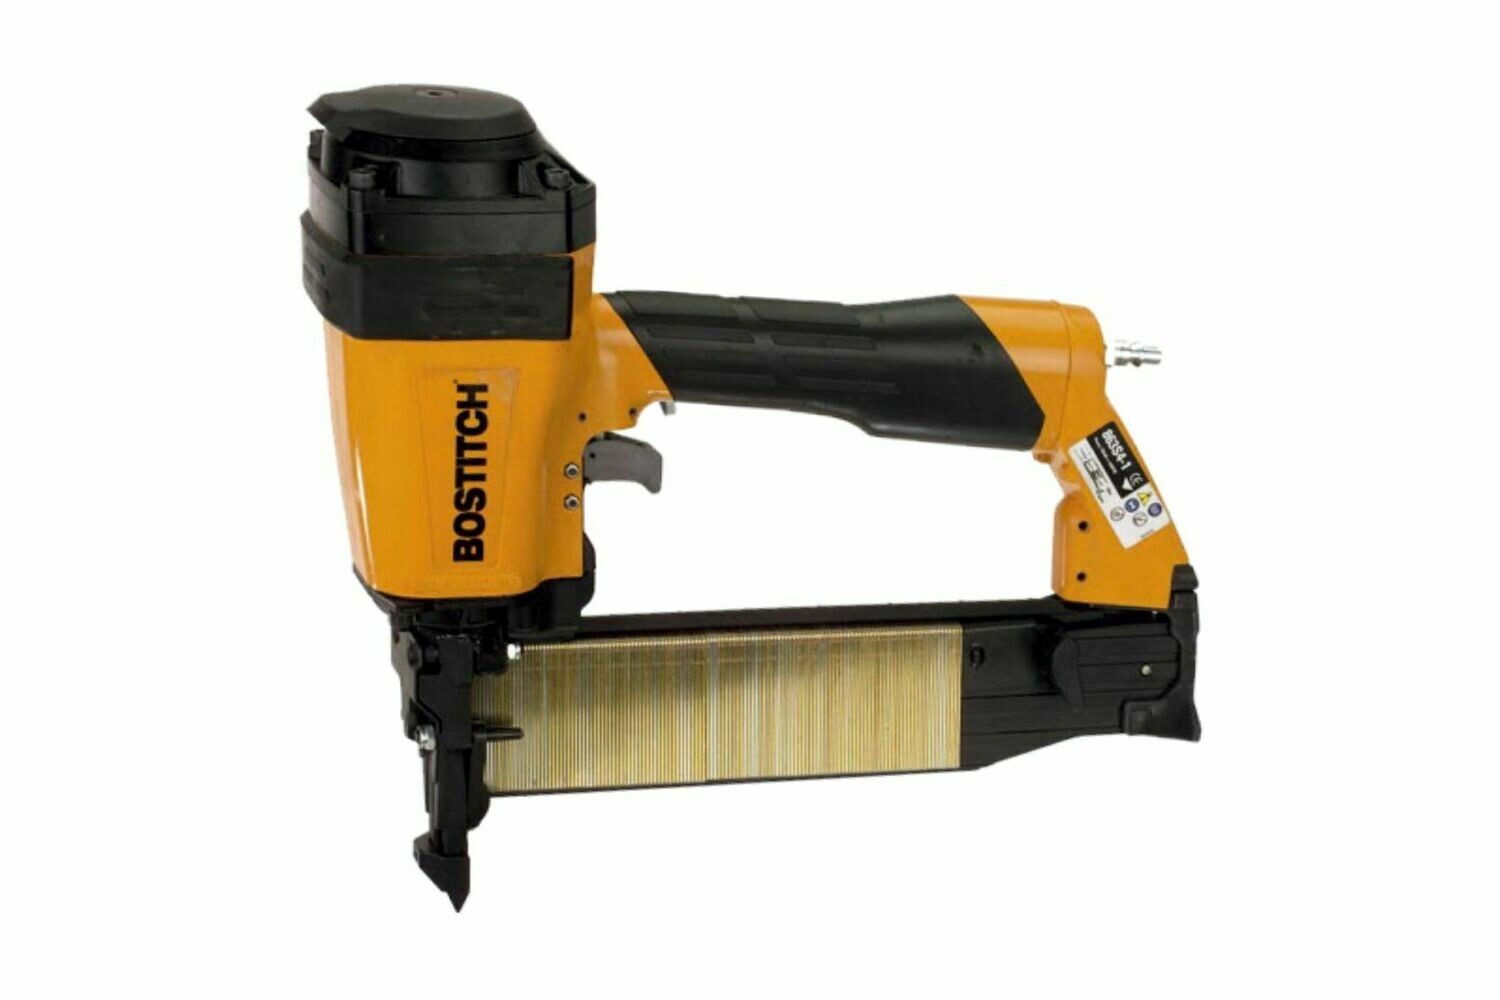 Bostitch SB130S1-2-E